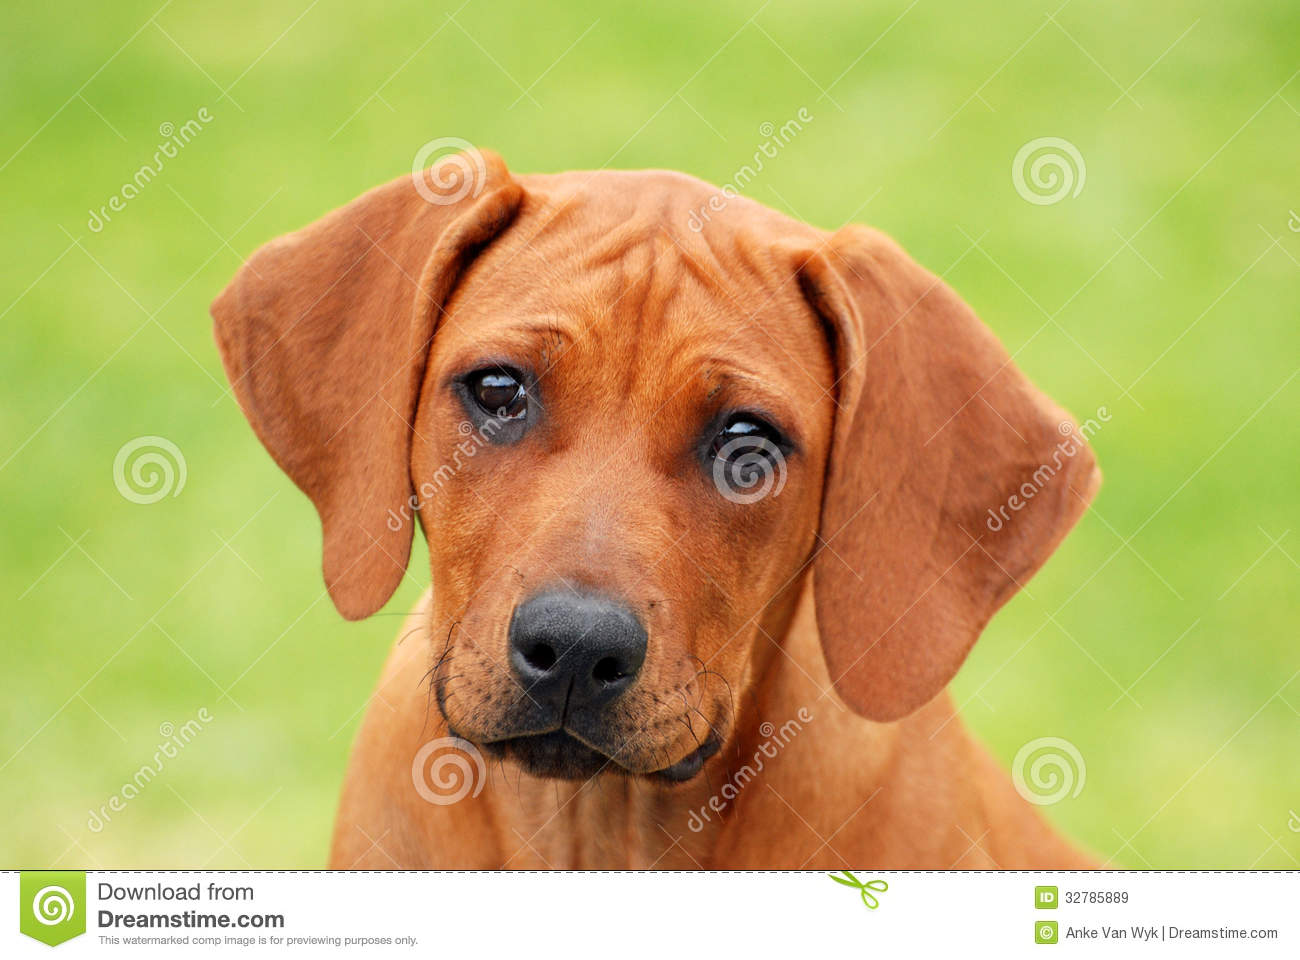 Cute Puppy Face Portrait Royalty Free Stock Image